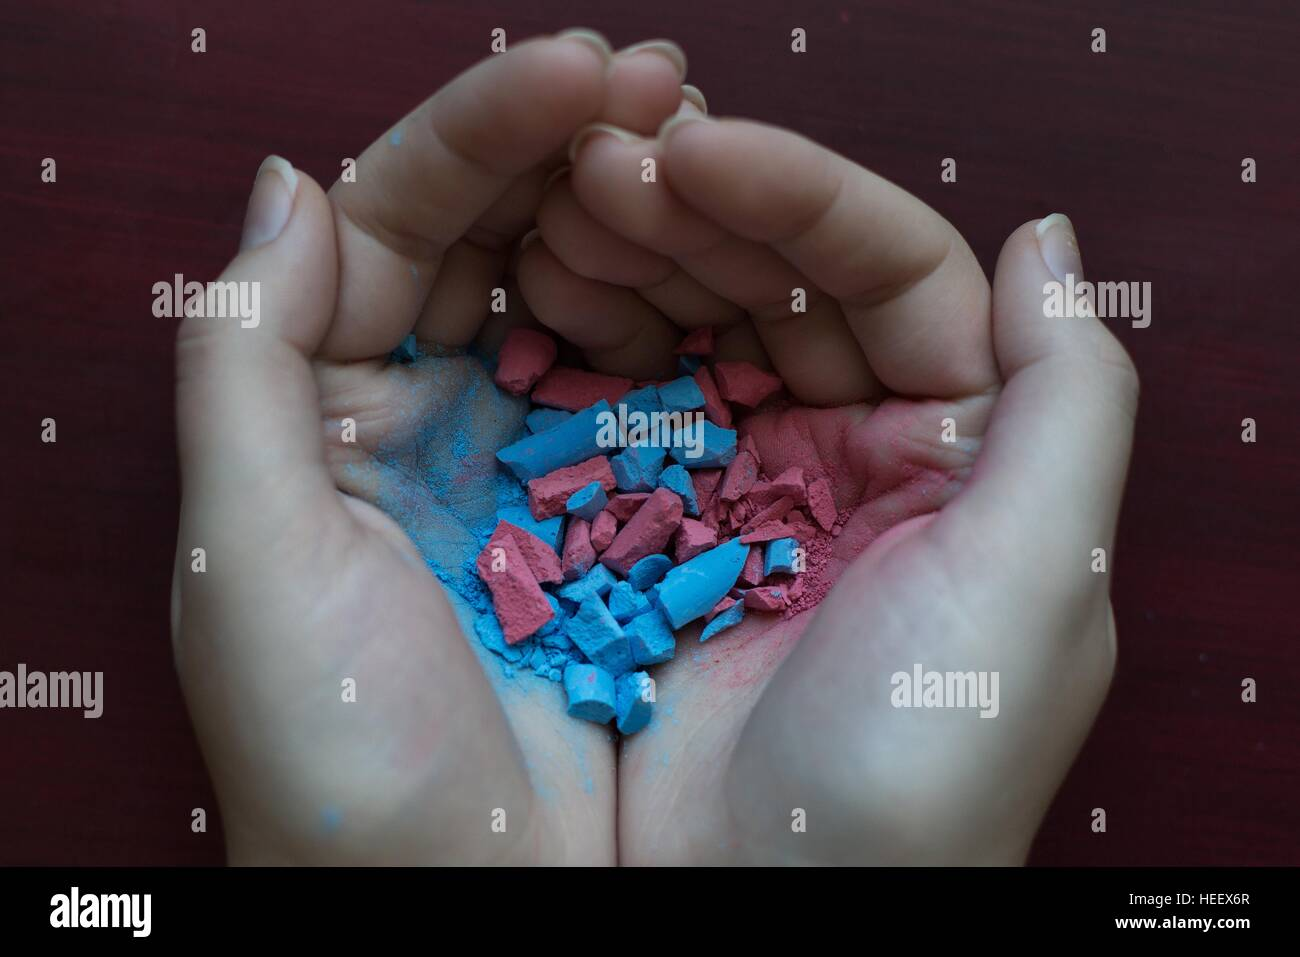 Cupped hands holding both pink and blue chalk, mixed and crumbled together. - Stock Image